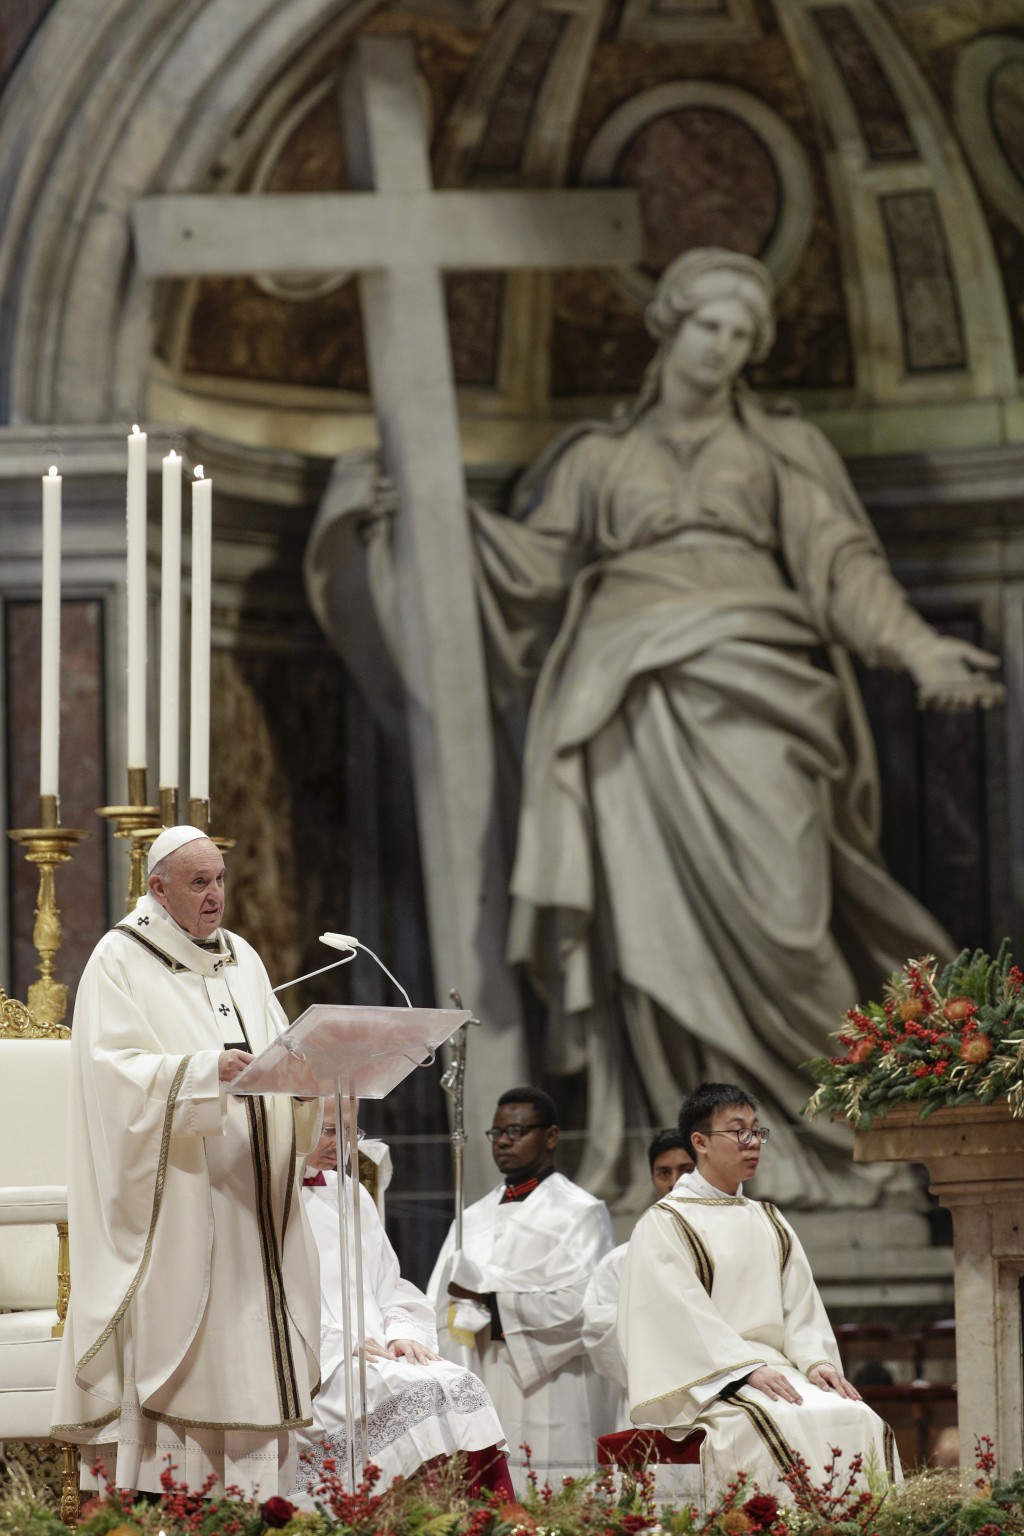 Pope Francis delivers his speech as he celebrates an Epiphany Mass in St. Peter's Basilica at the Vatican, Monday, Jan. 6, 2020. (AP Photo/Andrew Medi...